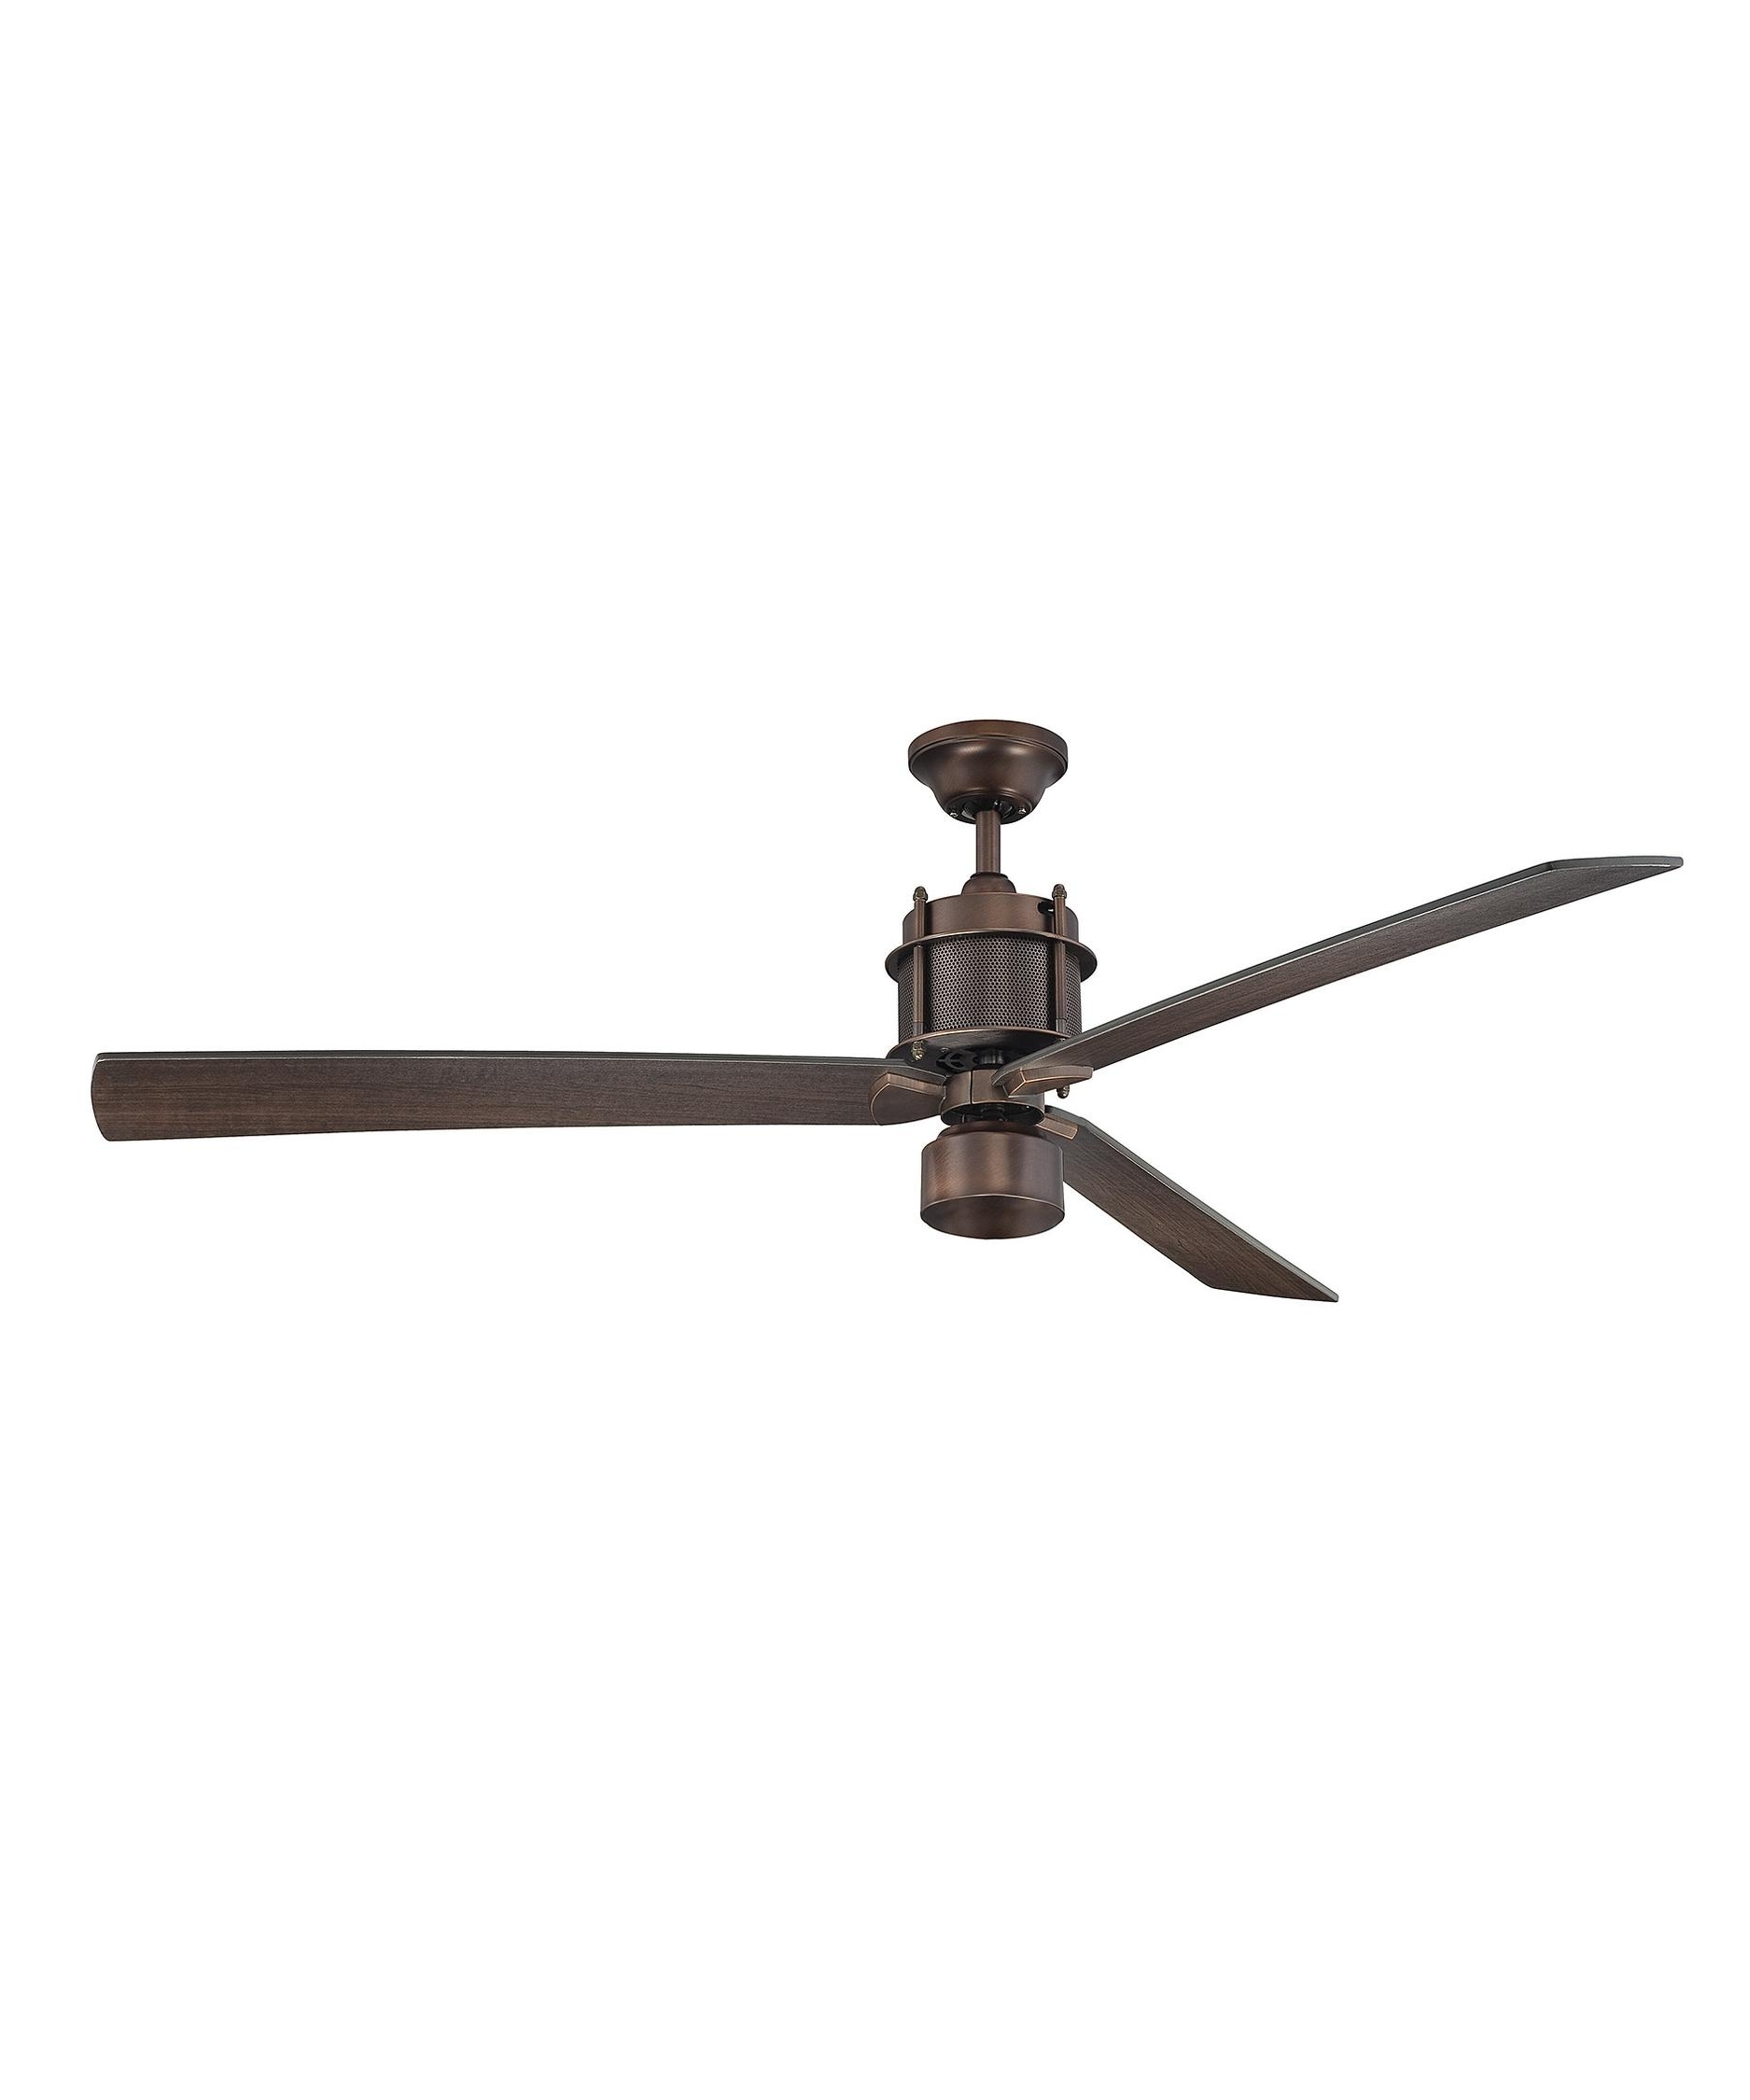 Outdoor Ceiling Fans With Metal Blades Regarding Most Current Savoy House 56 870 3 Muir 56 Inch 3 Blade Ceiling Fan (View 14 of 20)